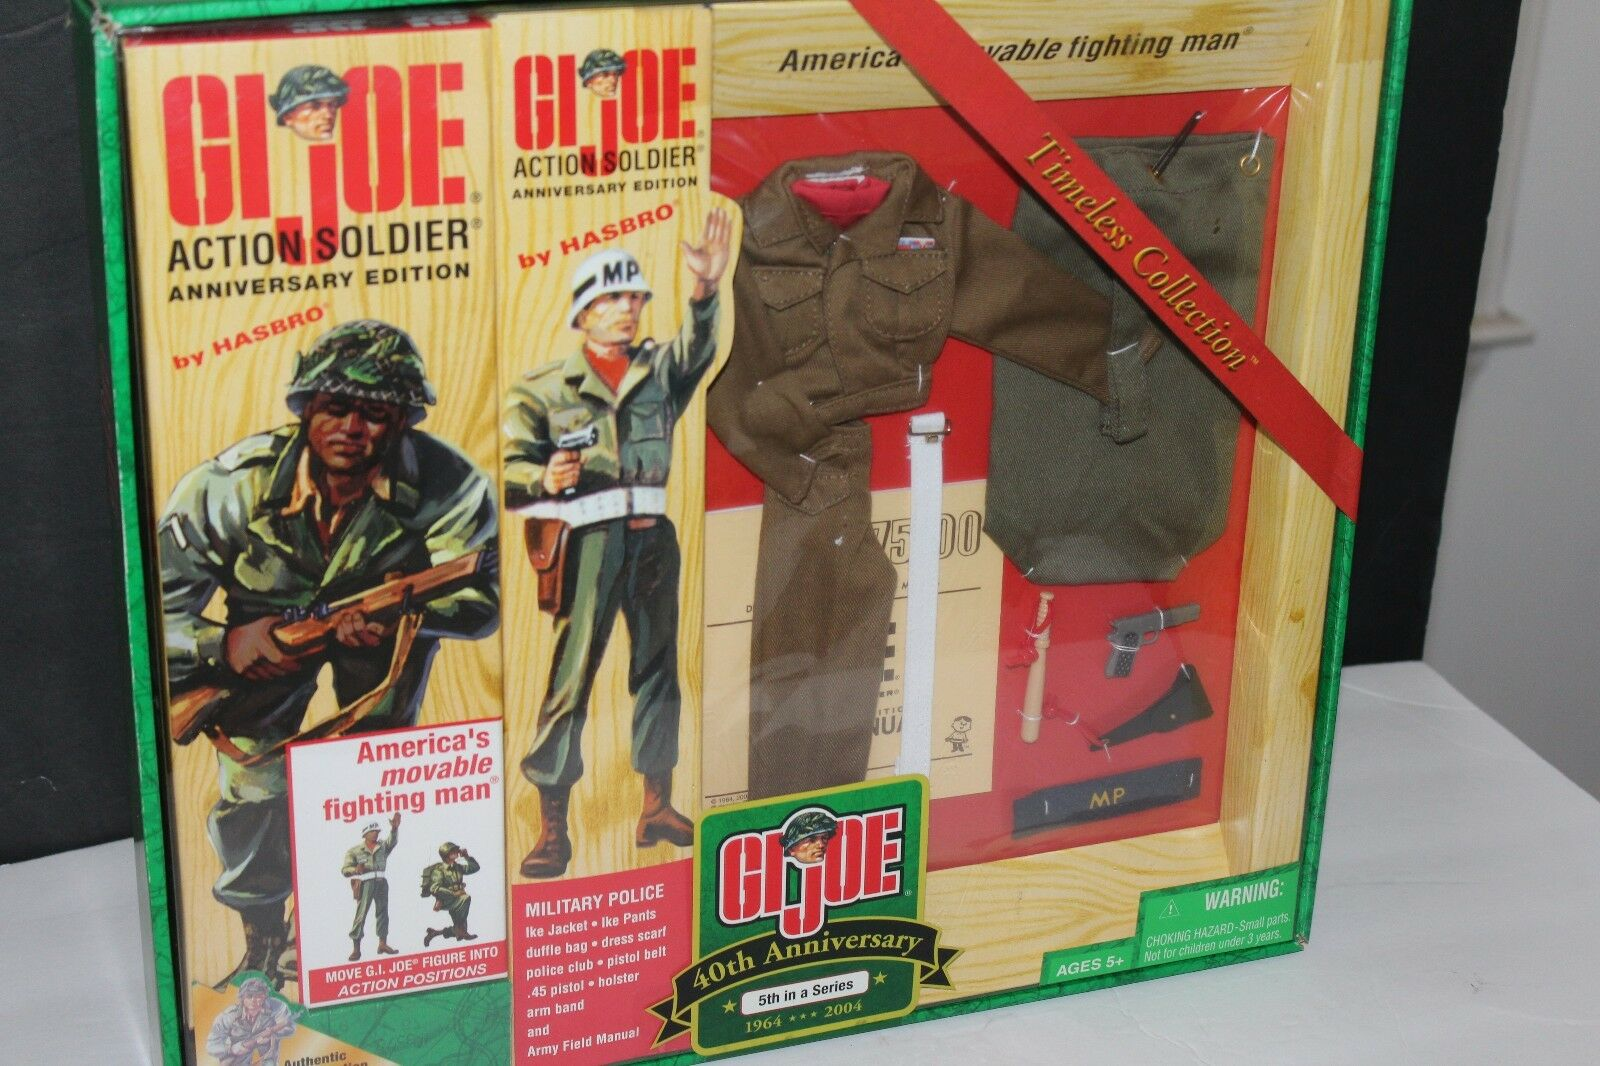 G.I. G.I. G.I. JOE ACTION SOLDIER MILITARY POLICE TIMELESS COLLECTION 40th ANNIV 5 SERIES 23aa93